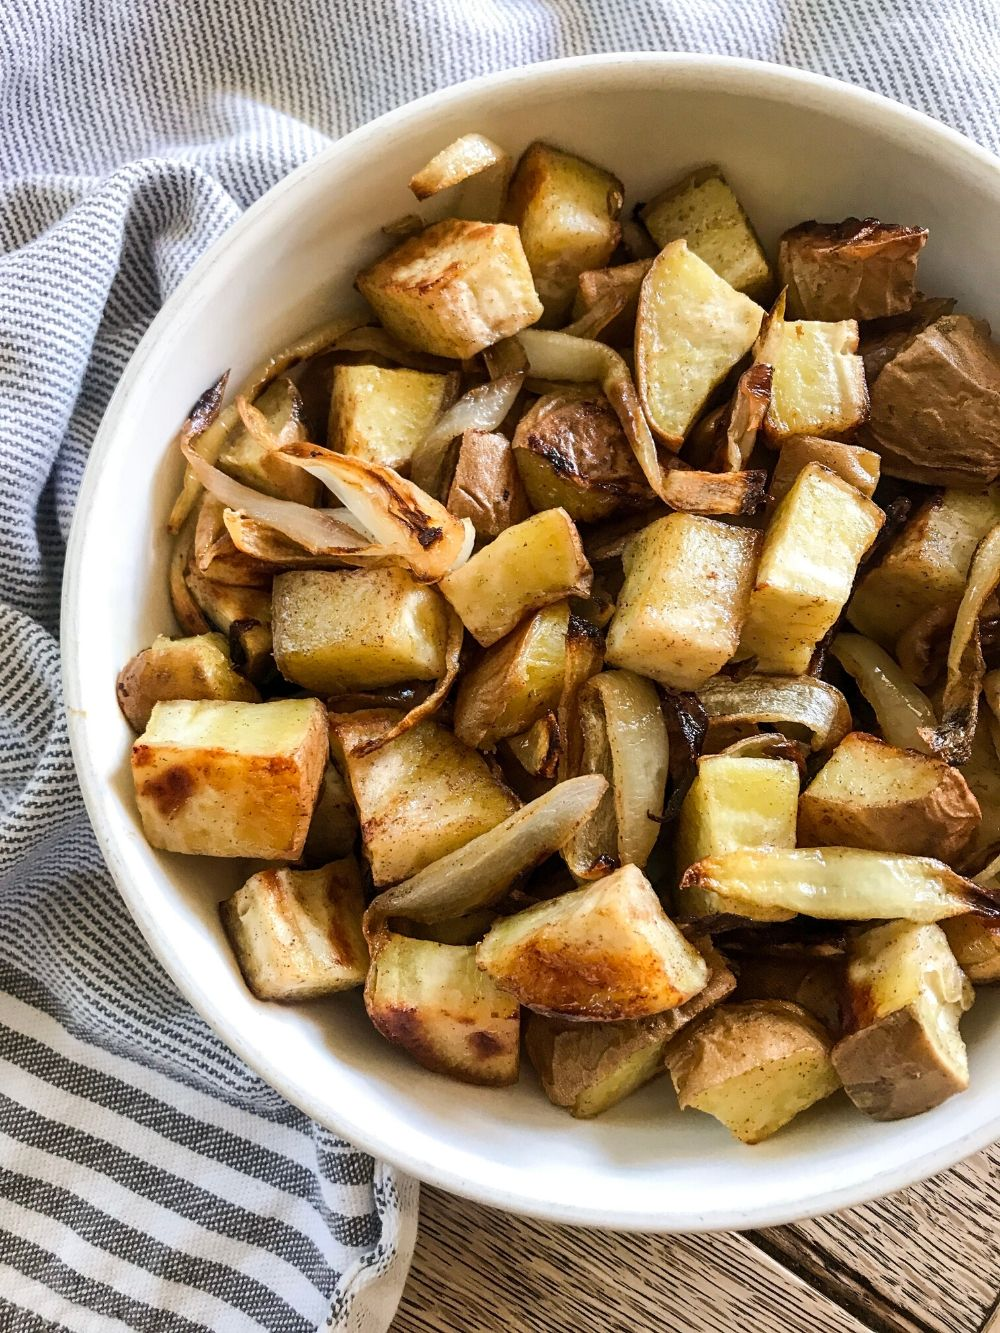 a white bowl of paleo roasted cinnamon white sweet potatoes and onion on a blue striped dish towel